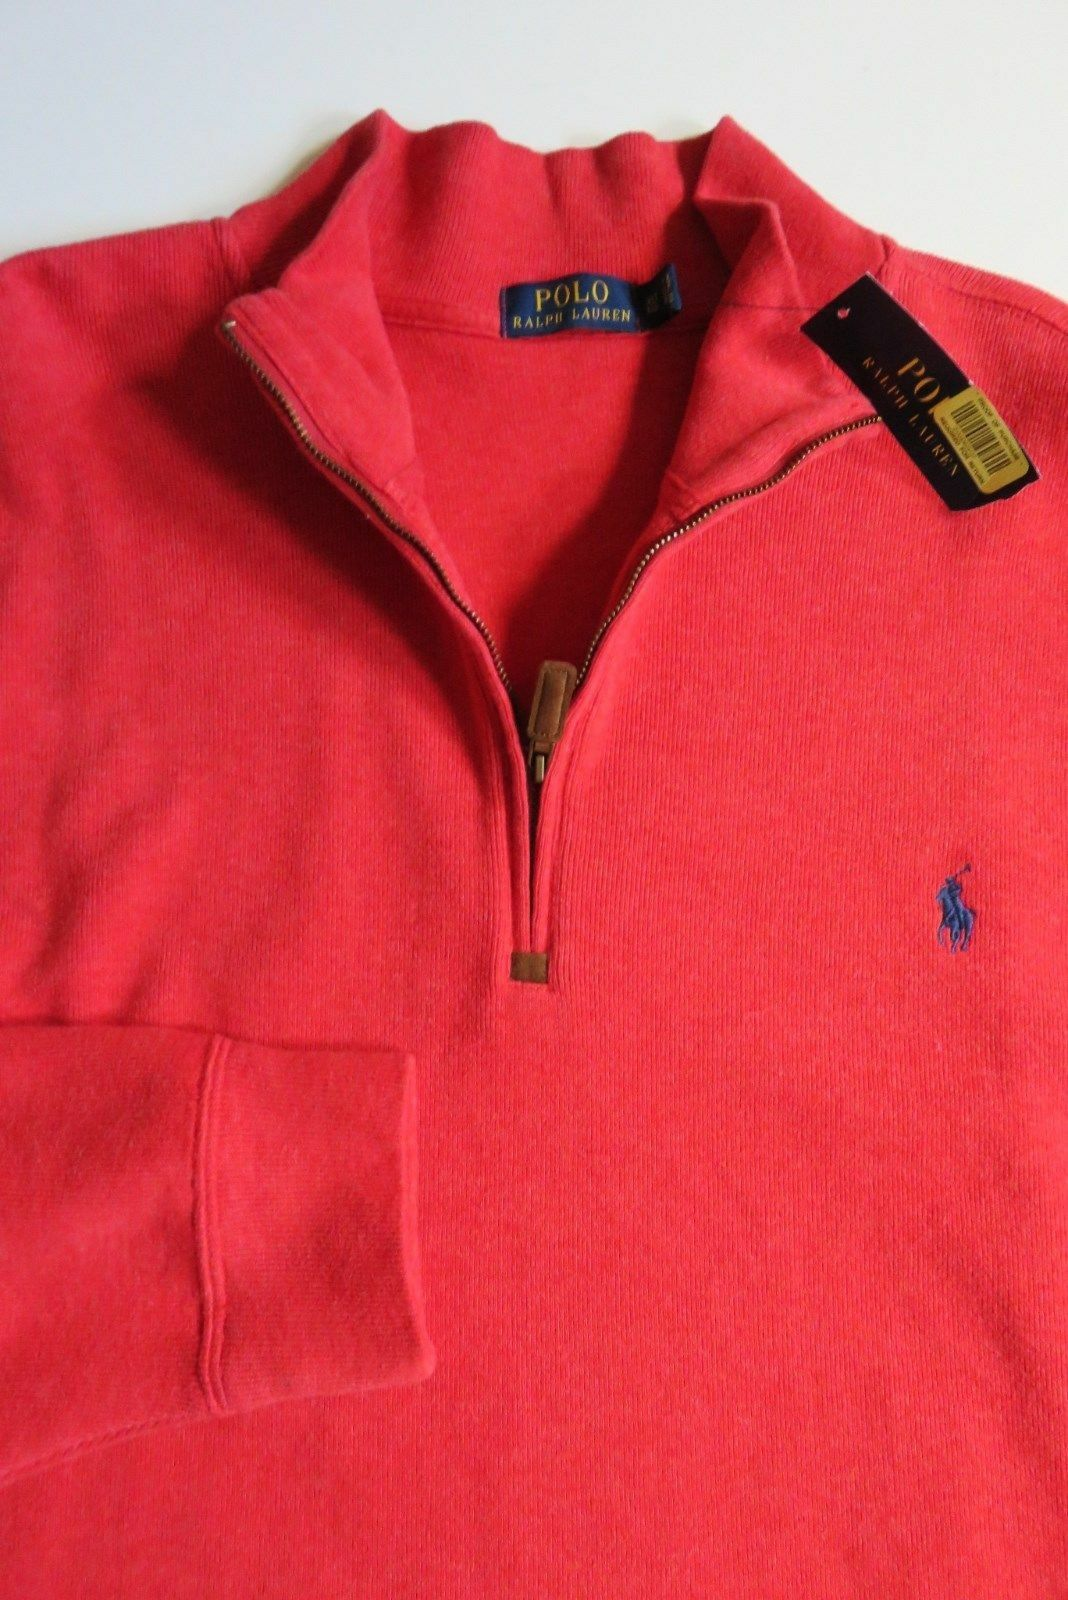 Nwt Polo Ralph Lauren Red 1 4 Zip French Ribbed Cotton Pony Logo Sweater 2XB